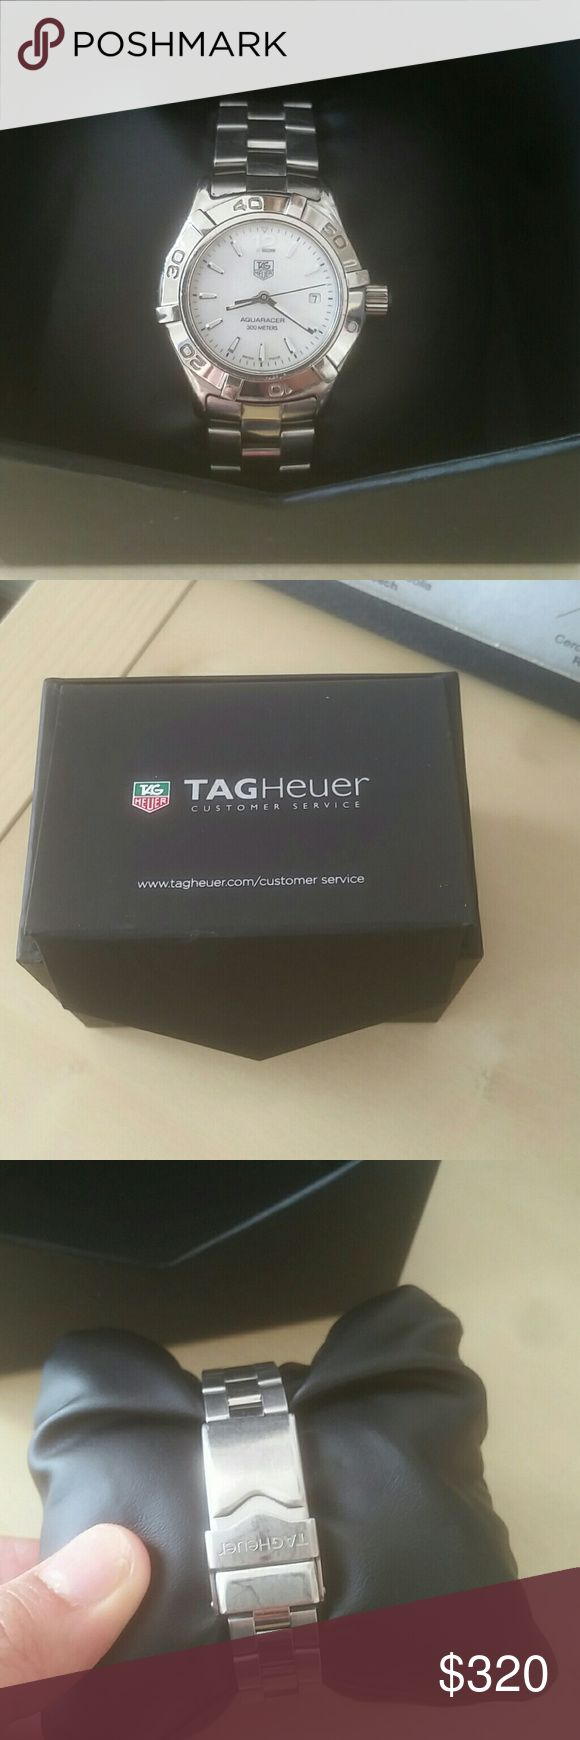 Tag Heuer Aquaracer Aquaracer 300 Meters  Mother of Pearl face 28 mm in diameter  I sent it in to Tag Heuer for authentication, and they suggested replacing the sapphire crystal for about $40, which I declined (I spent enough shipping it over with insurance) New battery put in 2/23/2017 Price is firm!!! Tag Heuer Accessories Watches